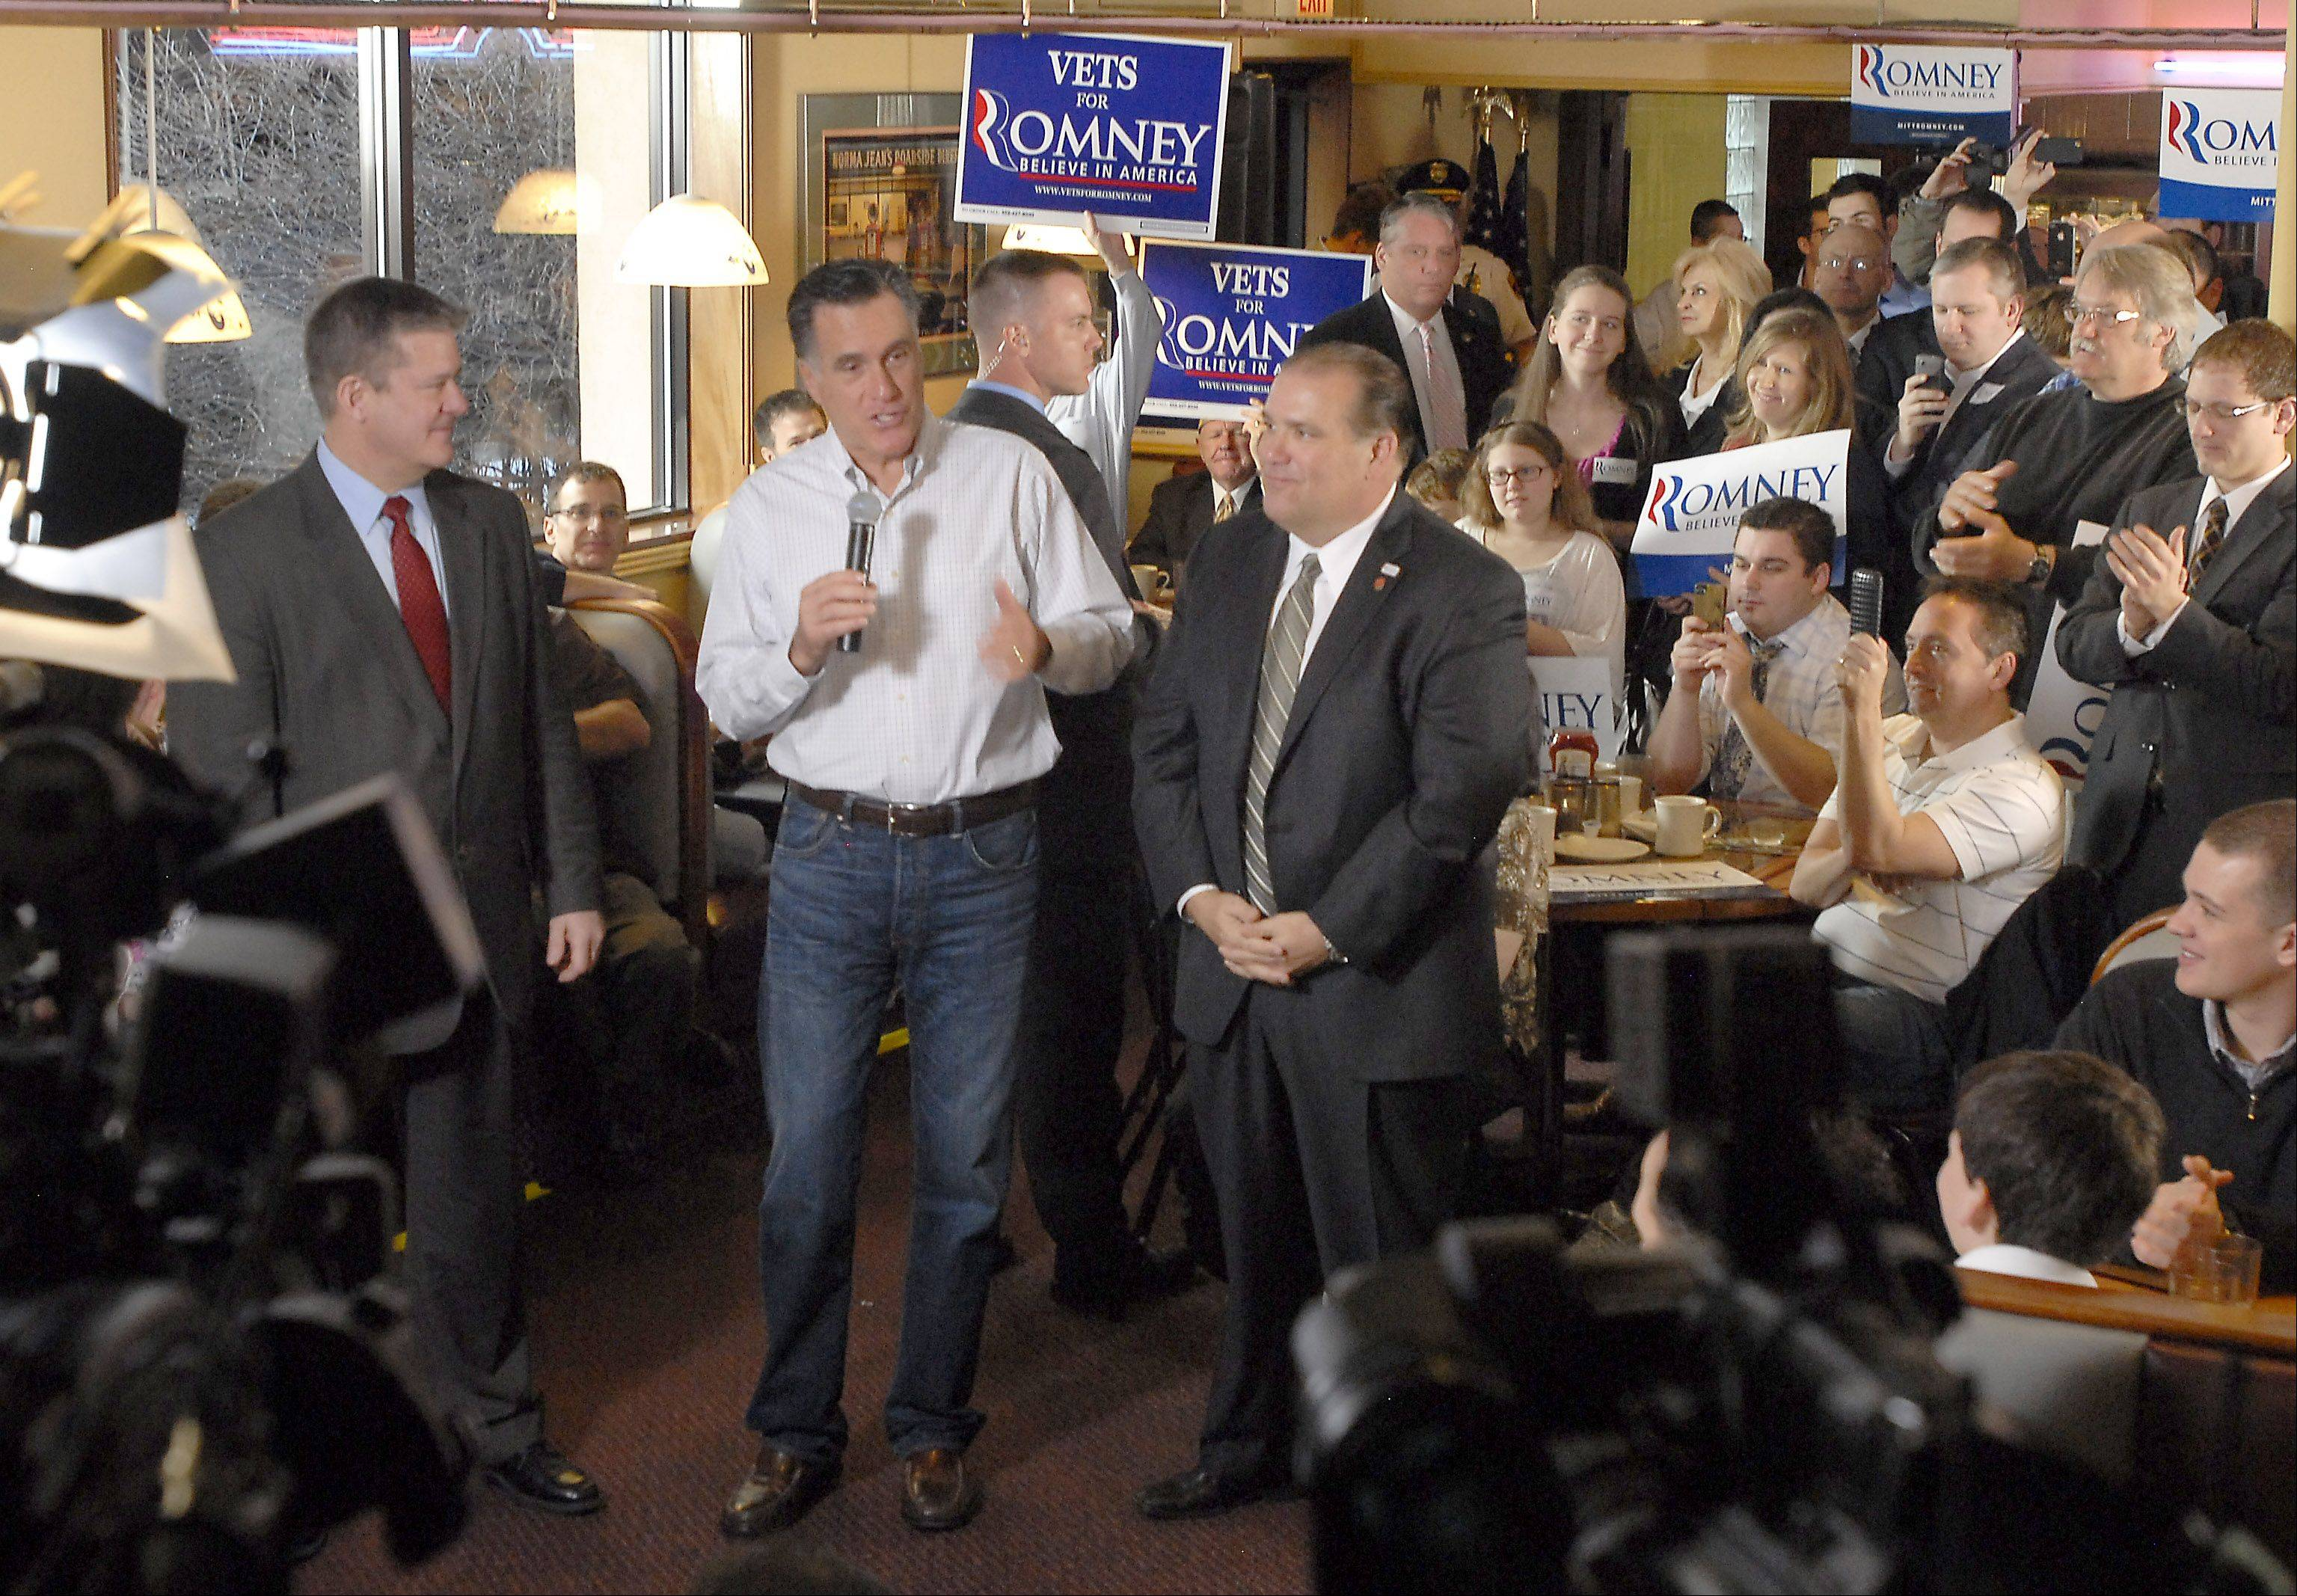 Mitt Romney stopped in Pancakes Eggcetera in March 2012, where he met with Rosemont Mayor Bradley Stephens, right, and enthusiastic supporters.